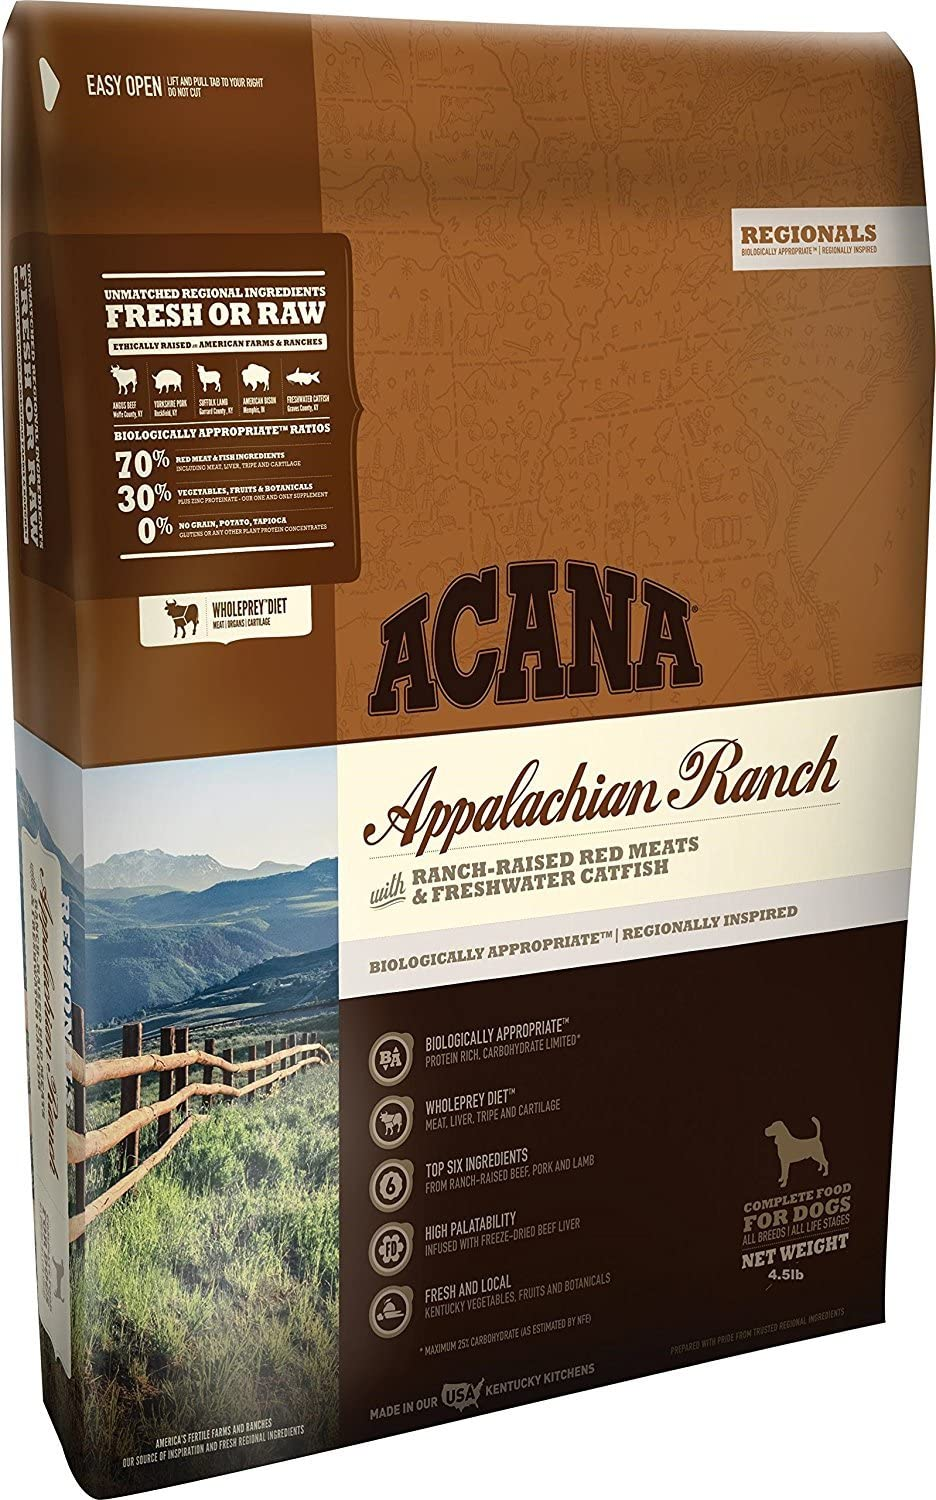 ACANA Appalachian Ranch Dry Dog Food with Red Meats & Fresh Water Cat-Fish 4.5# Bag